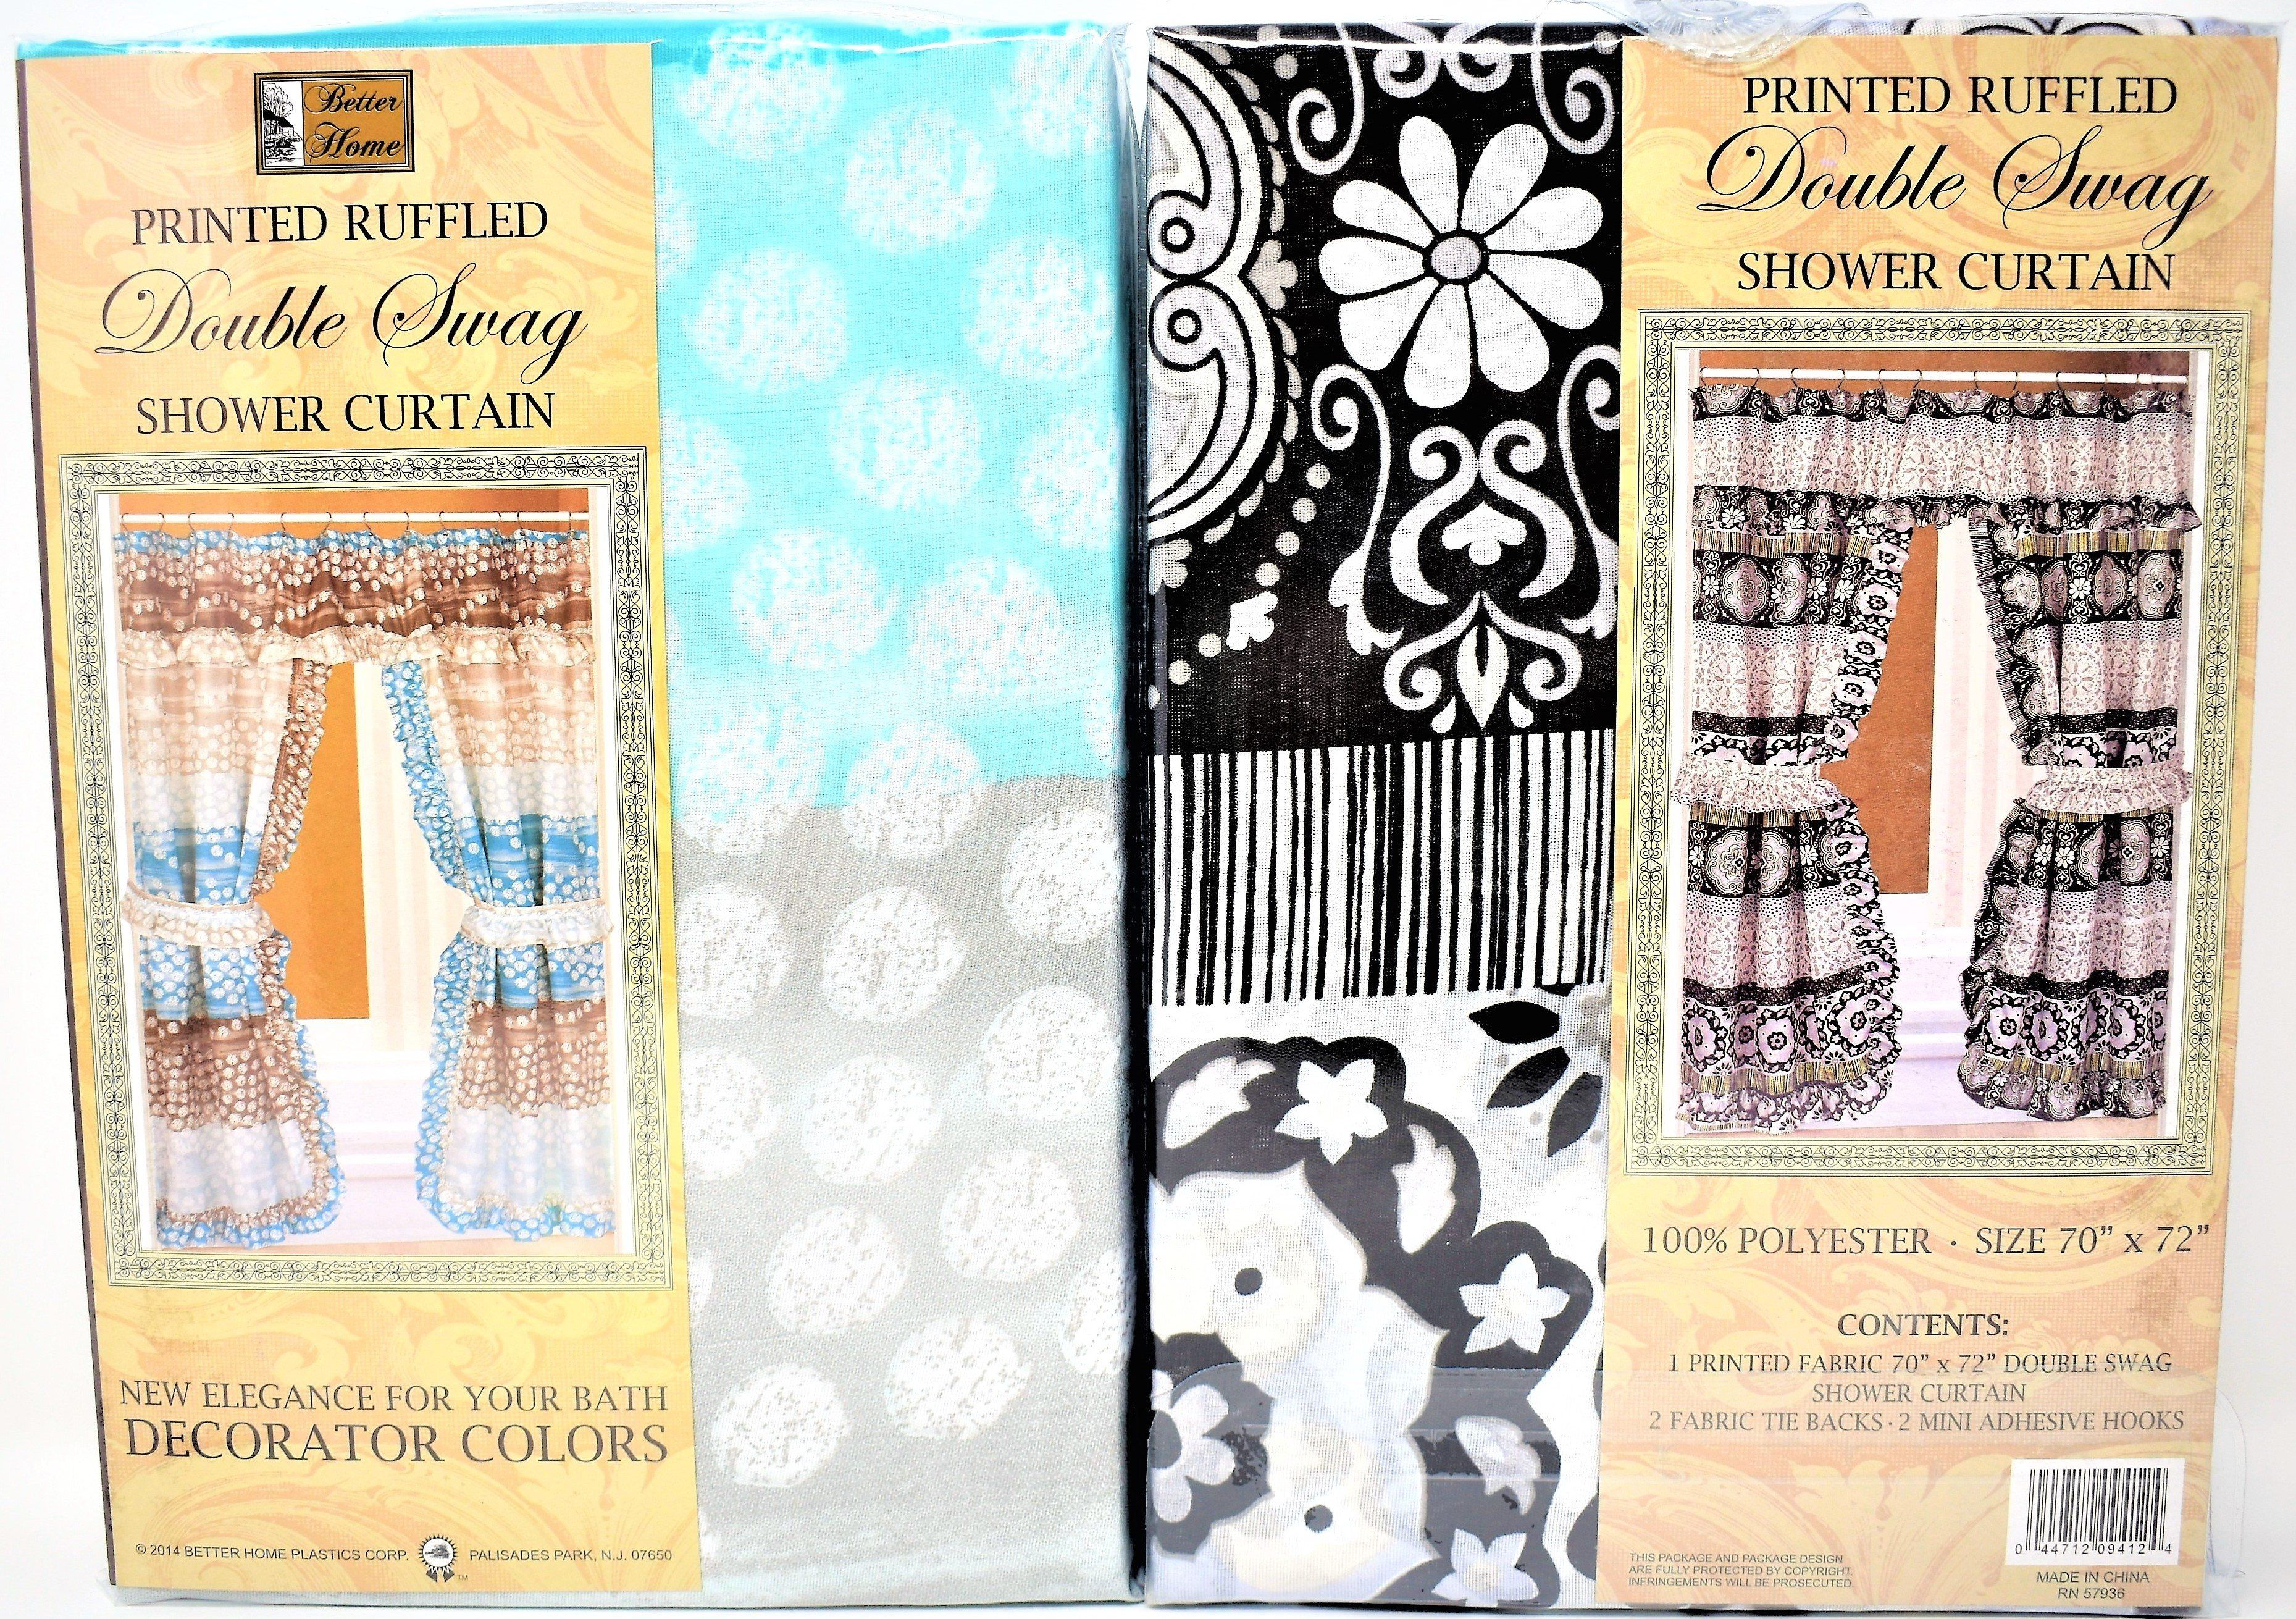 Printed Ruffled Double Swag Shower Curtain 1 ct.